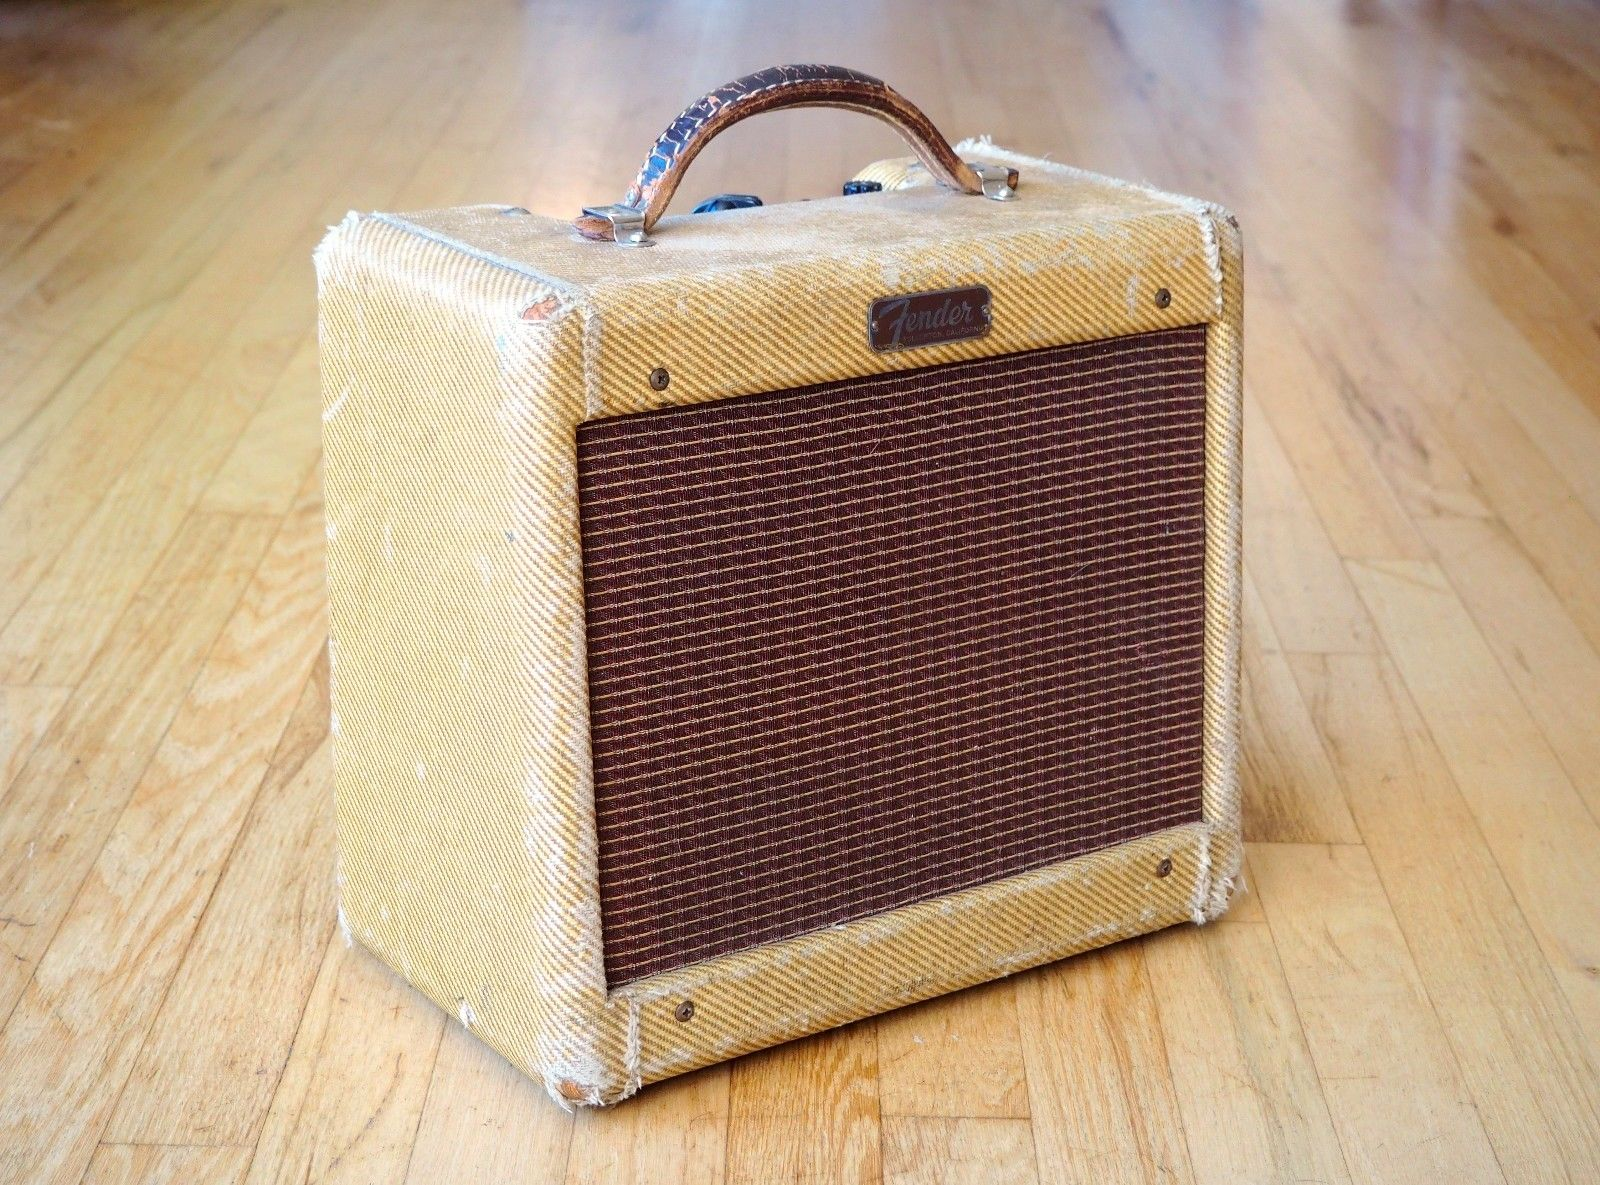 Dating vintage ampeg amps